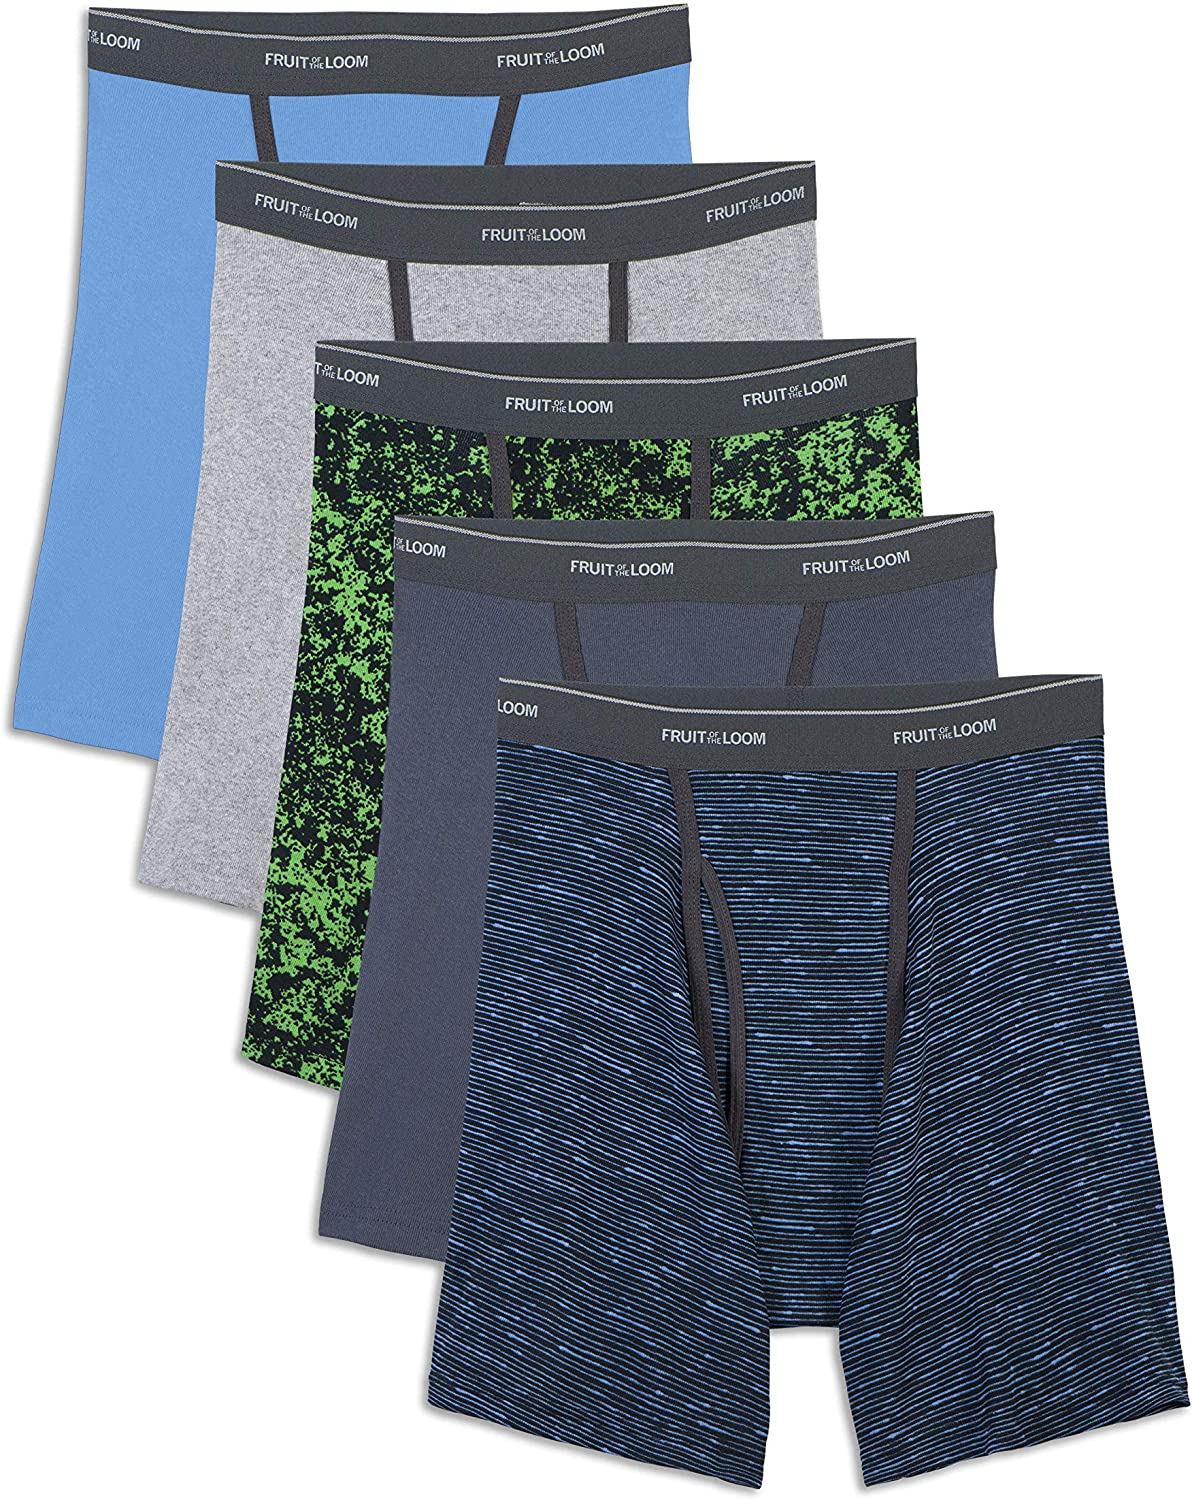 Pack of 5 Fruit of the Loom Mens Fashion Briefs